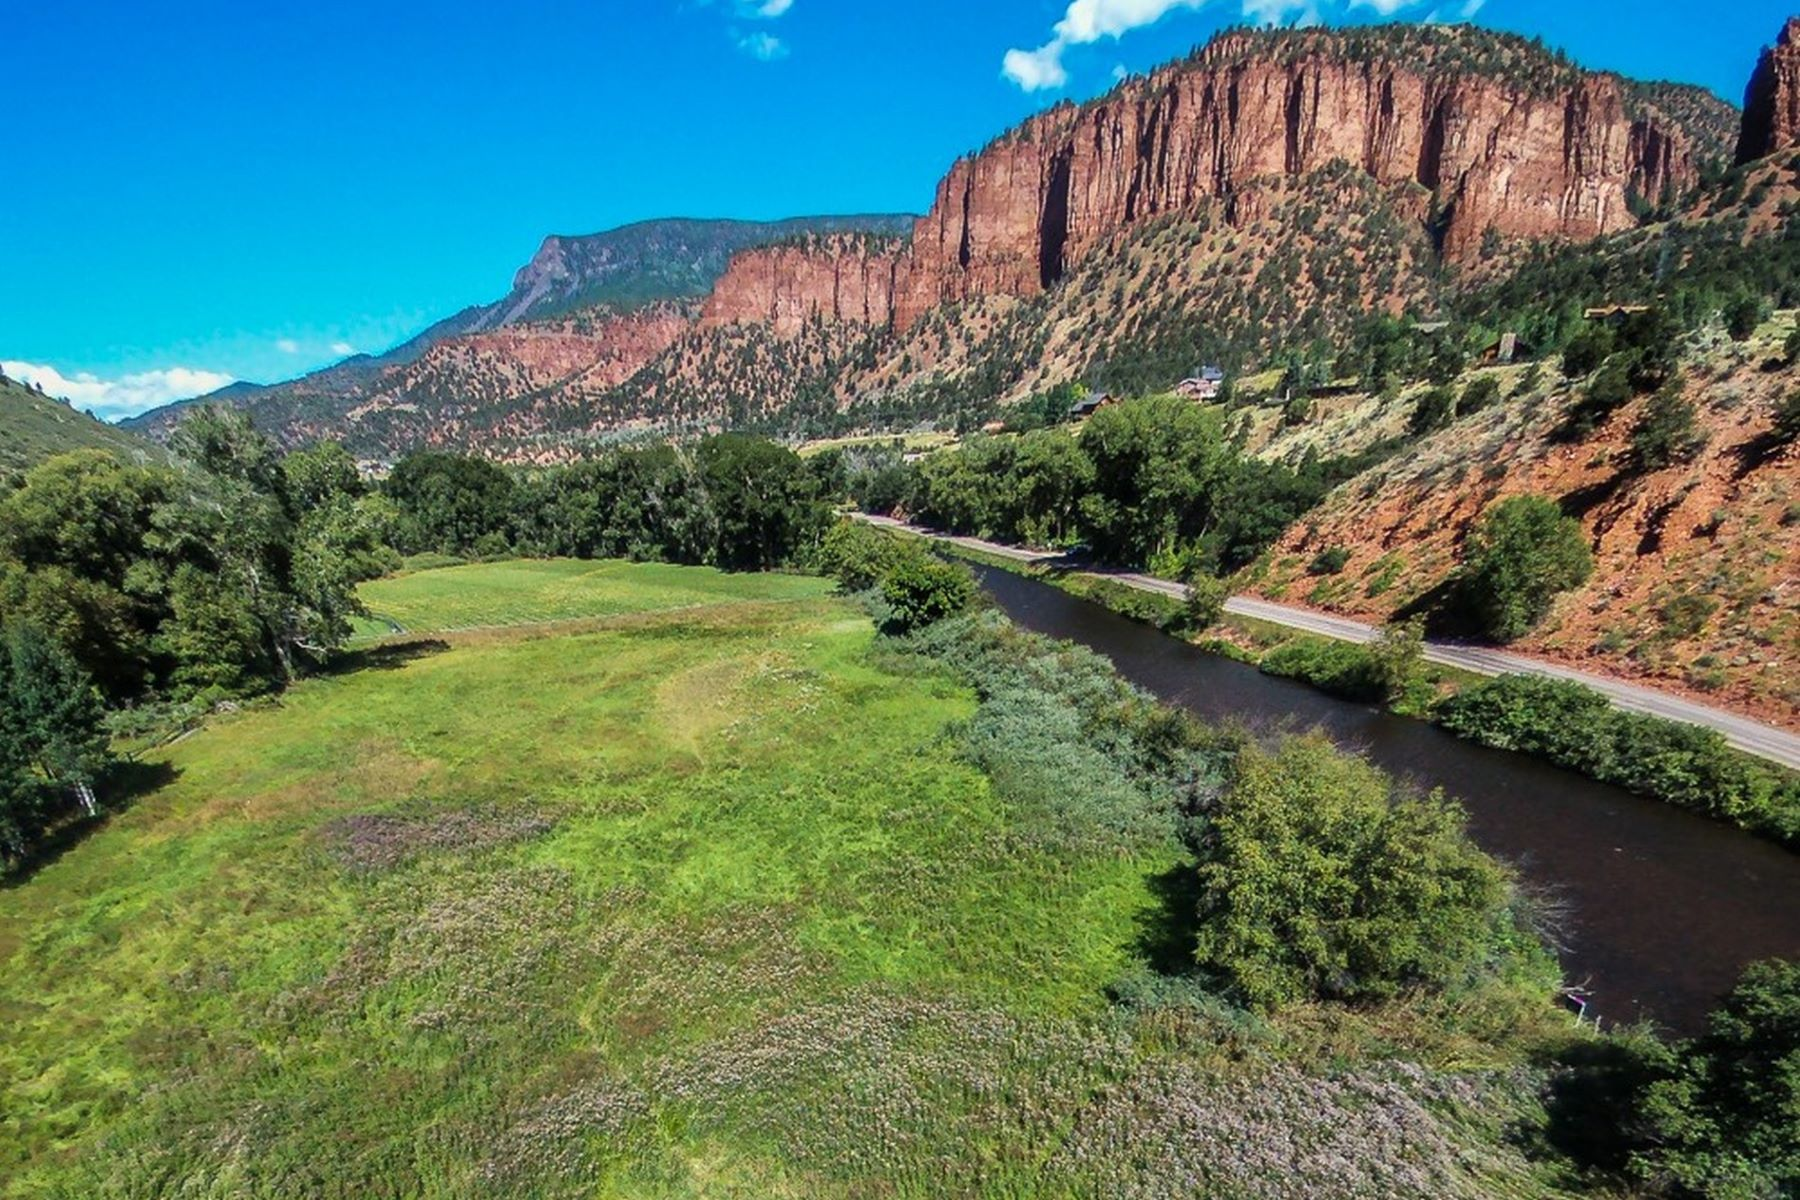 Terreno por un Venta en Special Place on the Frying Pan River TBD Frying Pan Rd Basalt, Colorado 81621 Estados Unidos